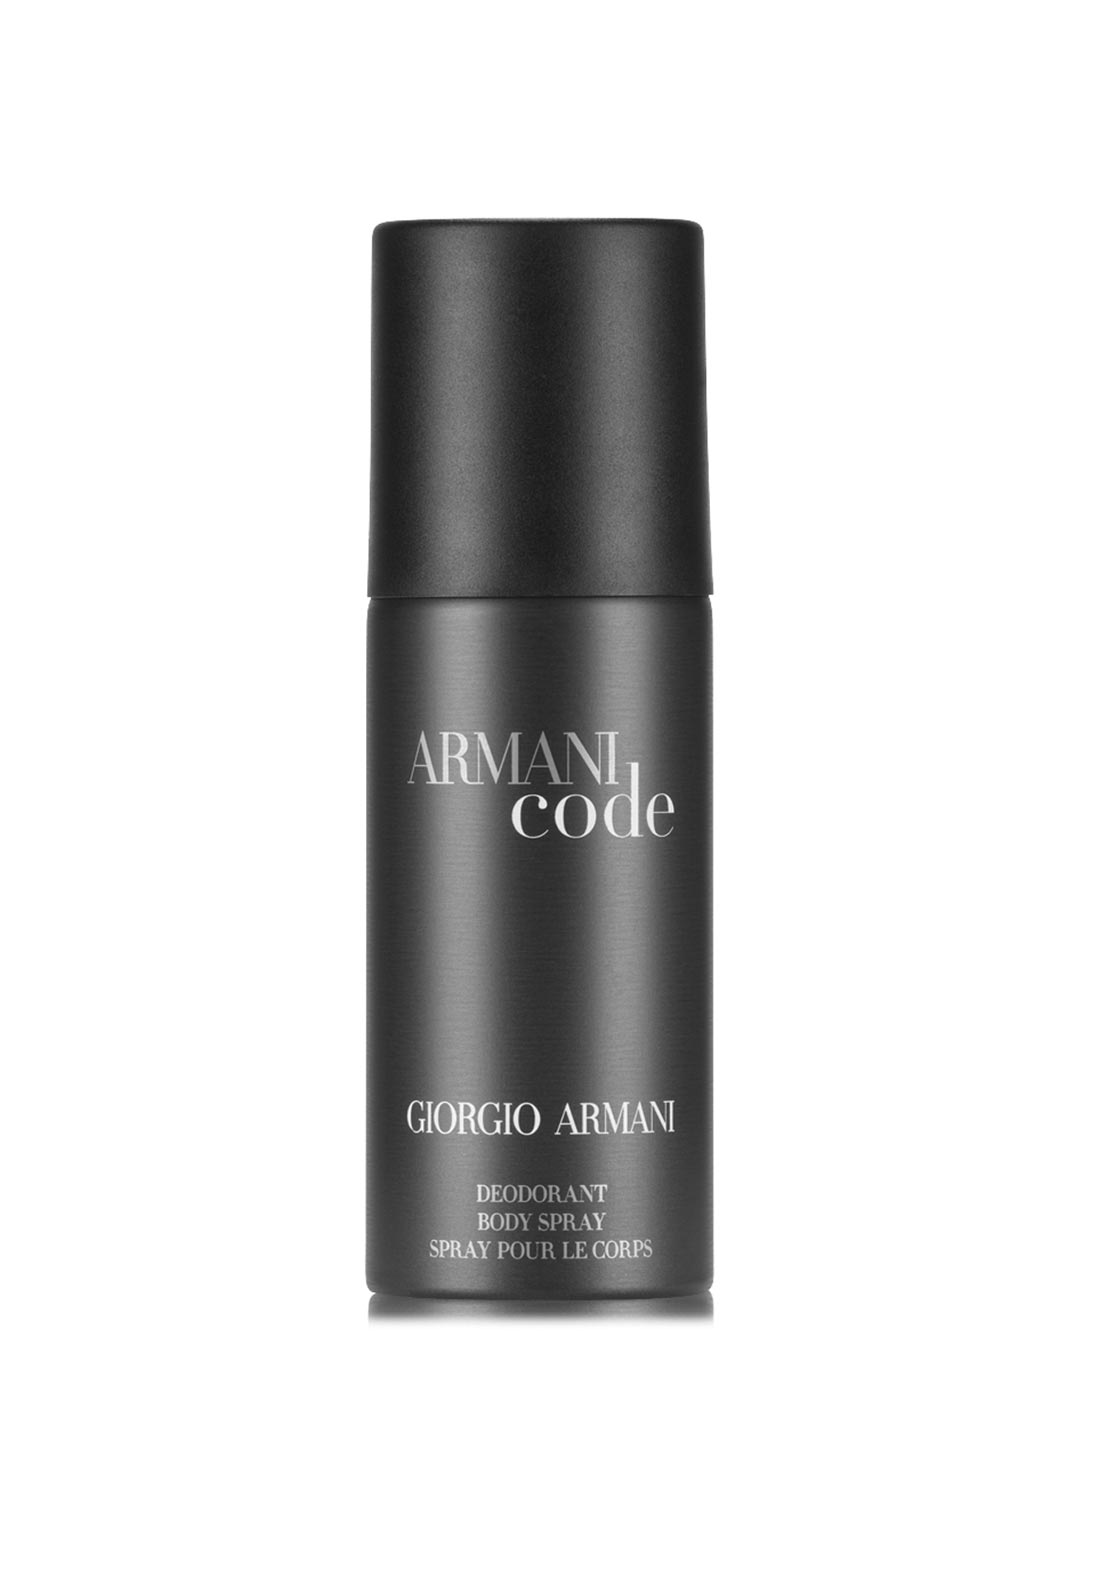 Armani Code Giorgio Armani Deodorant Spray for Men, 150ml